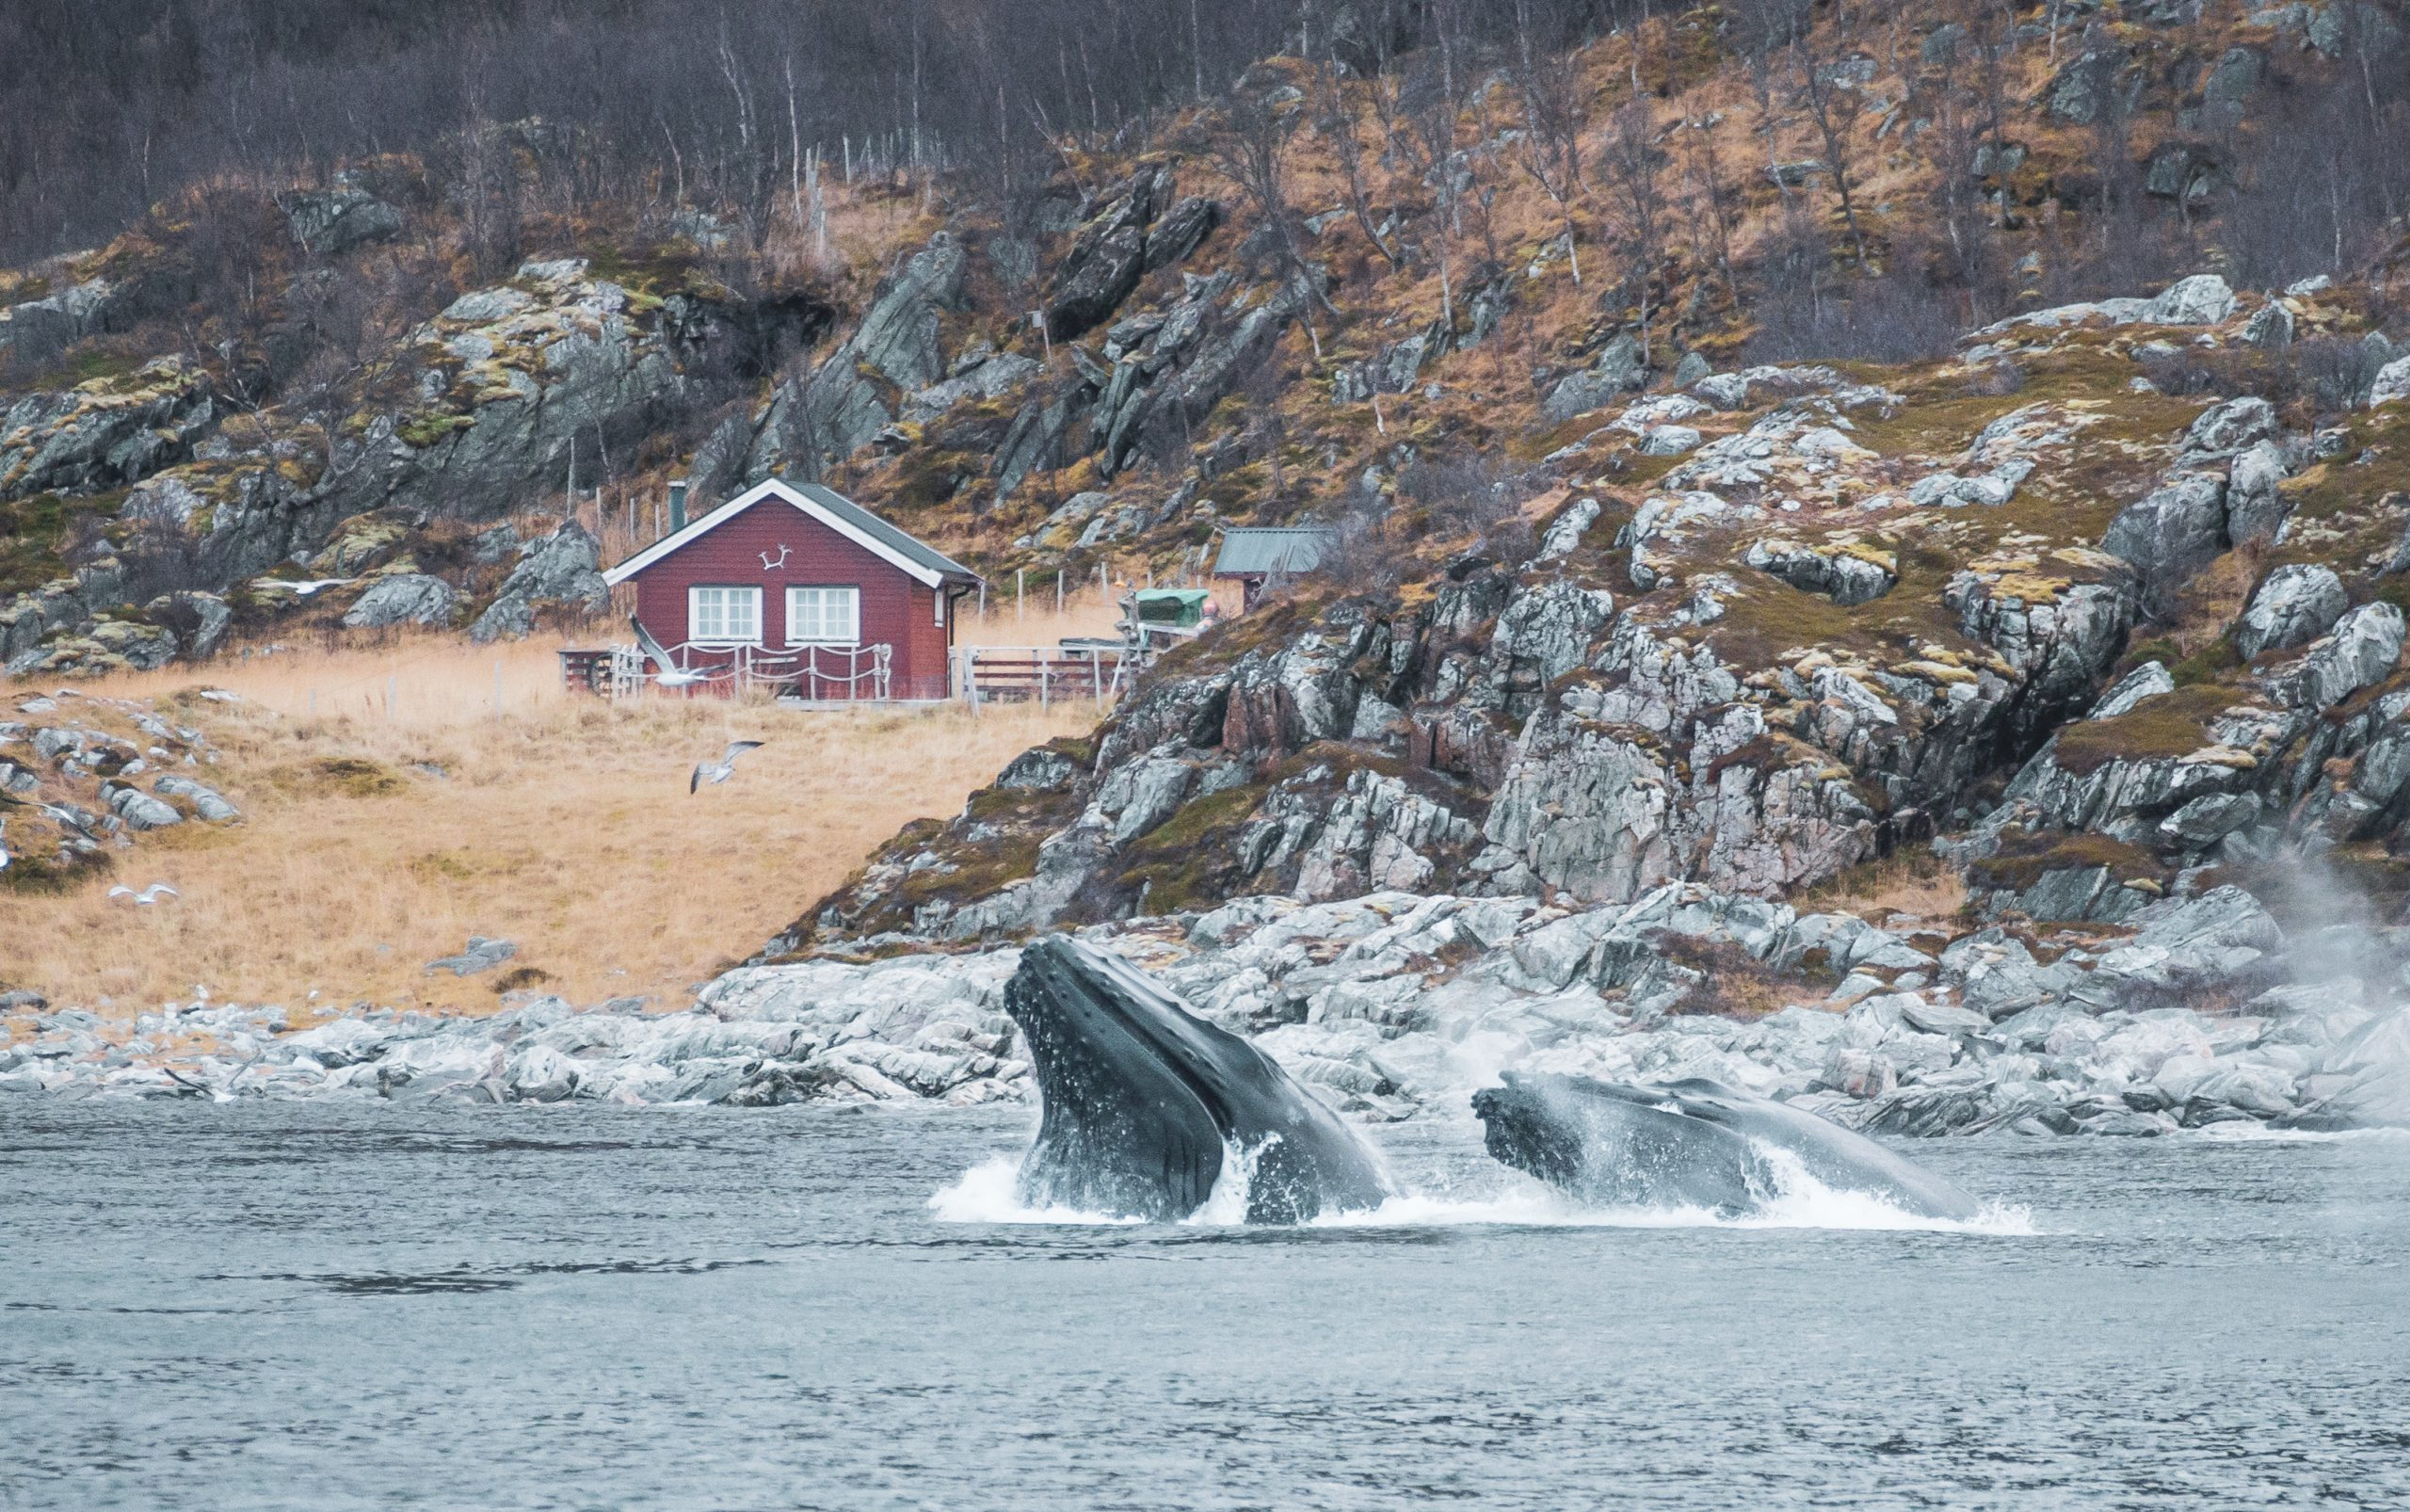 humpback whales feeding in front of norwegian cabin